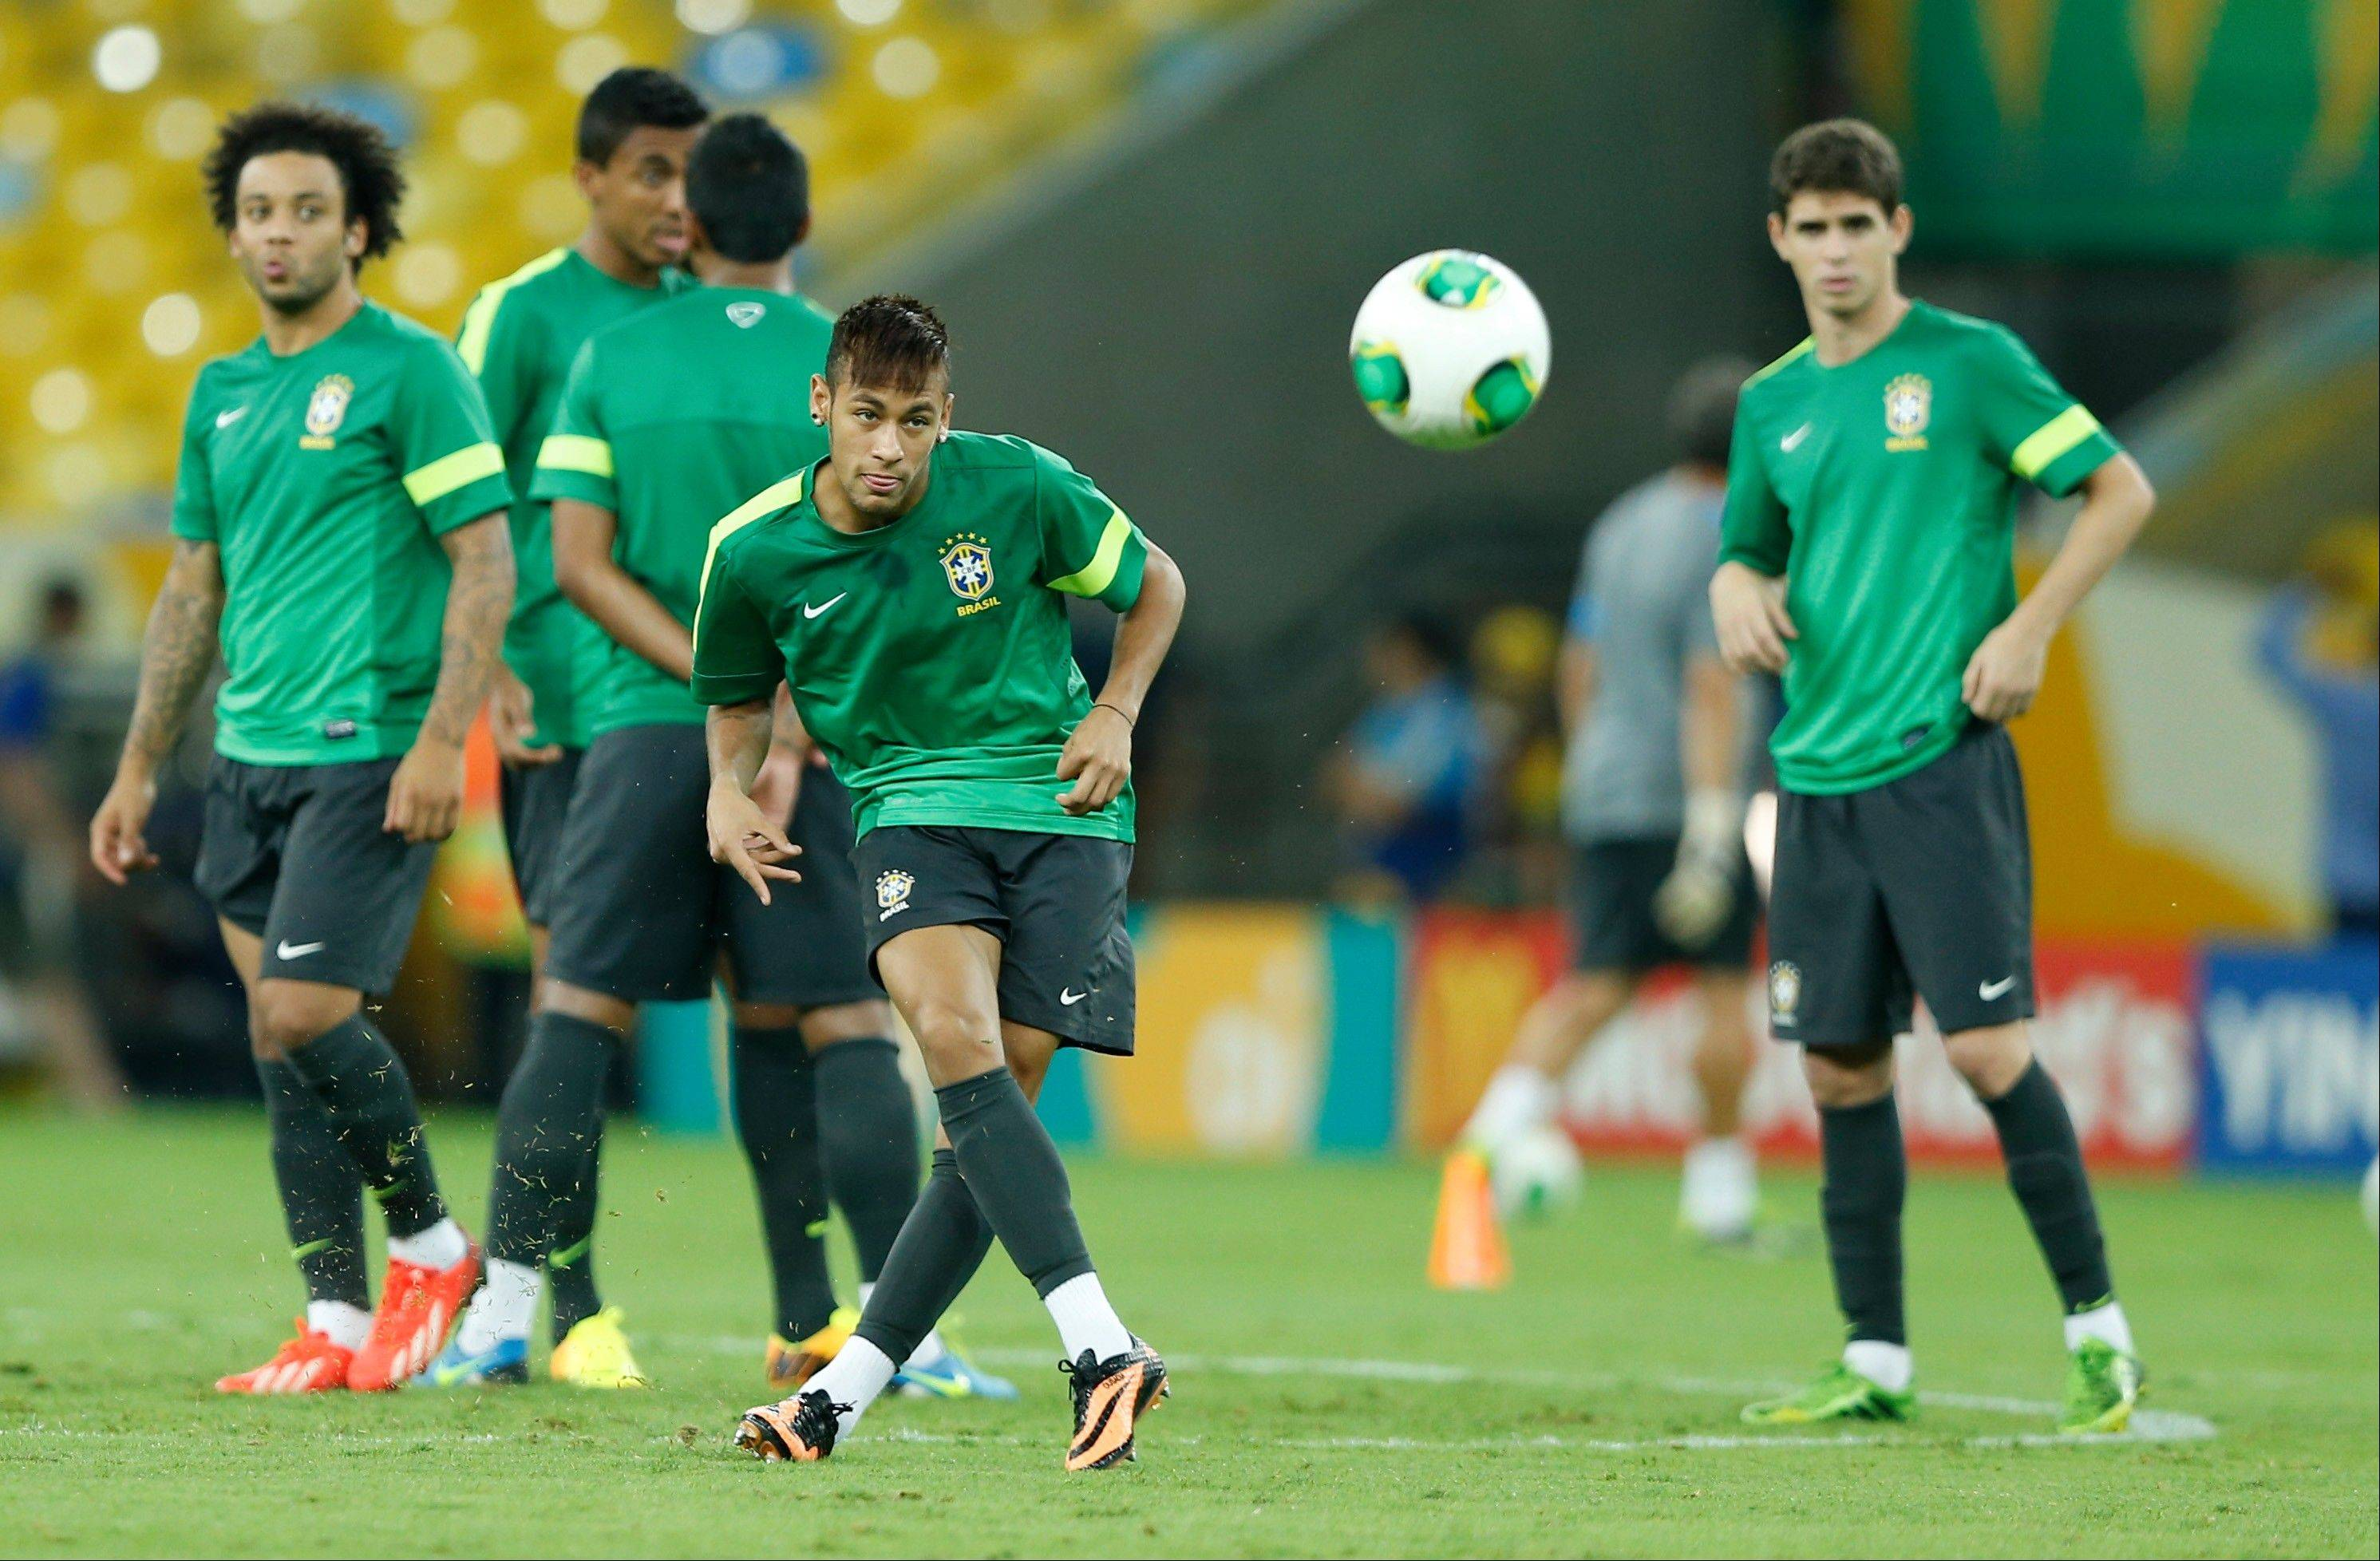 Brazil's Neymar kicks a ball during a training session of Brazil on the eve of the soccer Confederations Cup final match between Brazil and Spain at Maracana stadium in Rio de Janeiro, Brazil, Saturday, June 29, 2013.